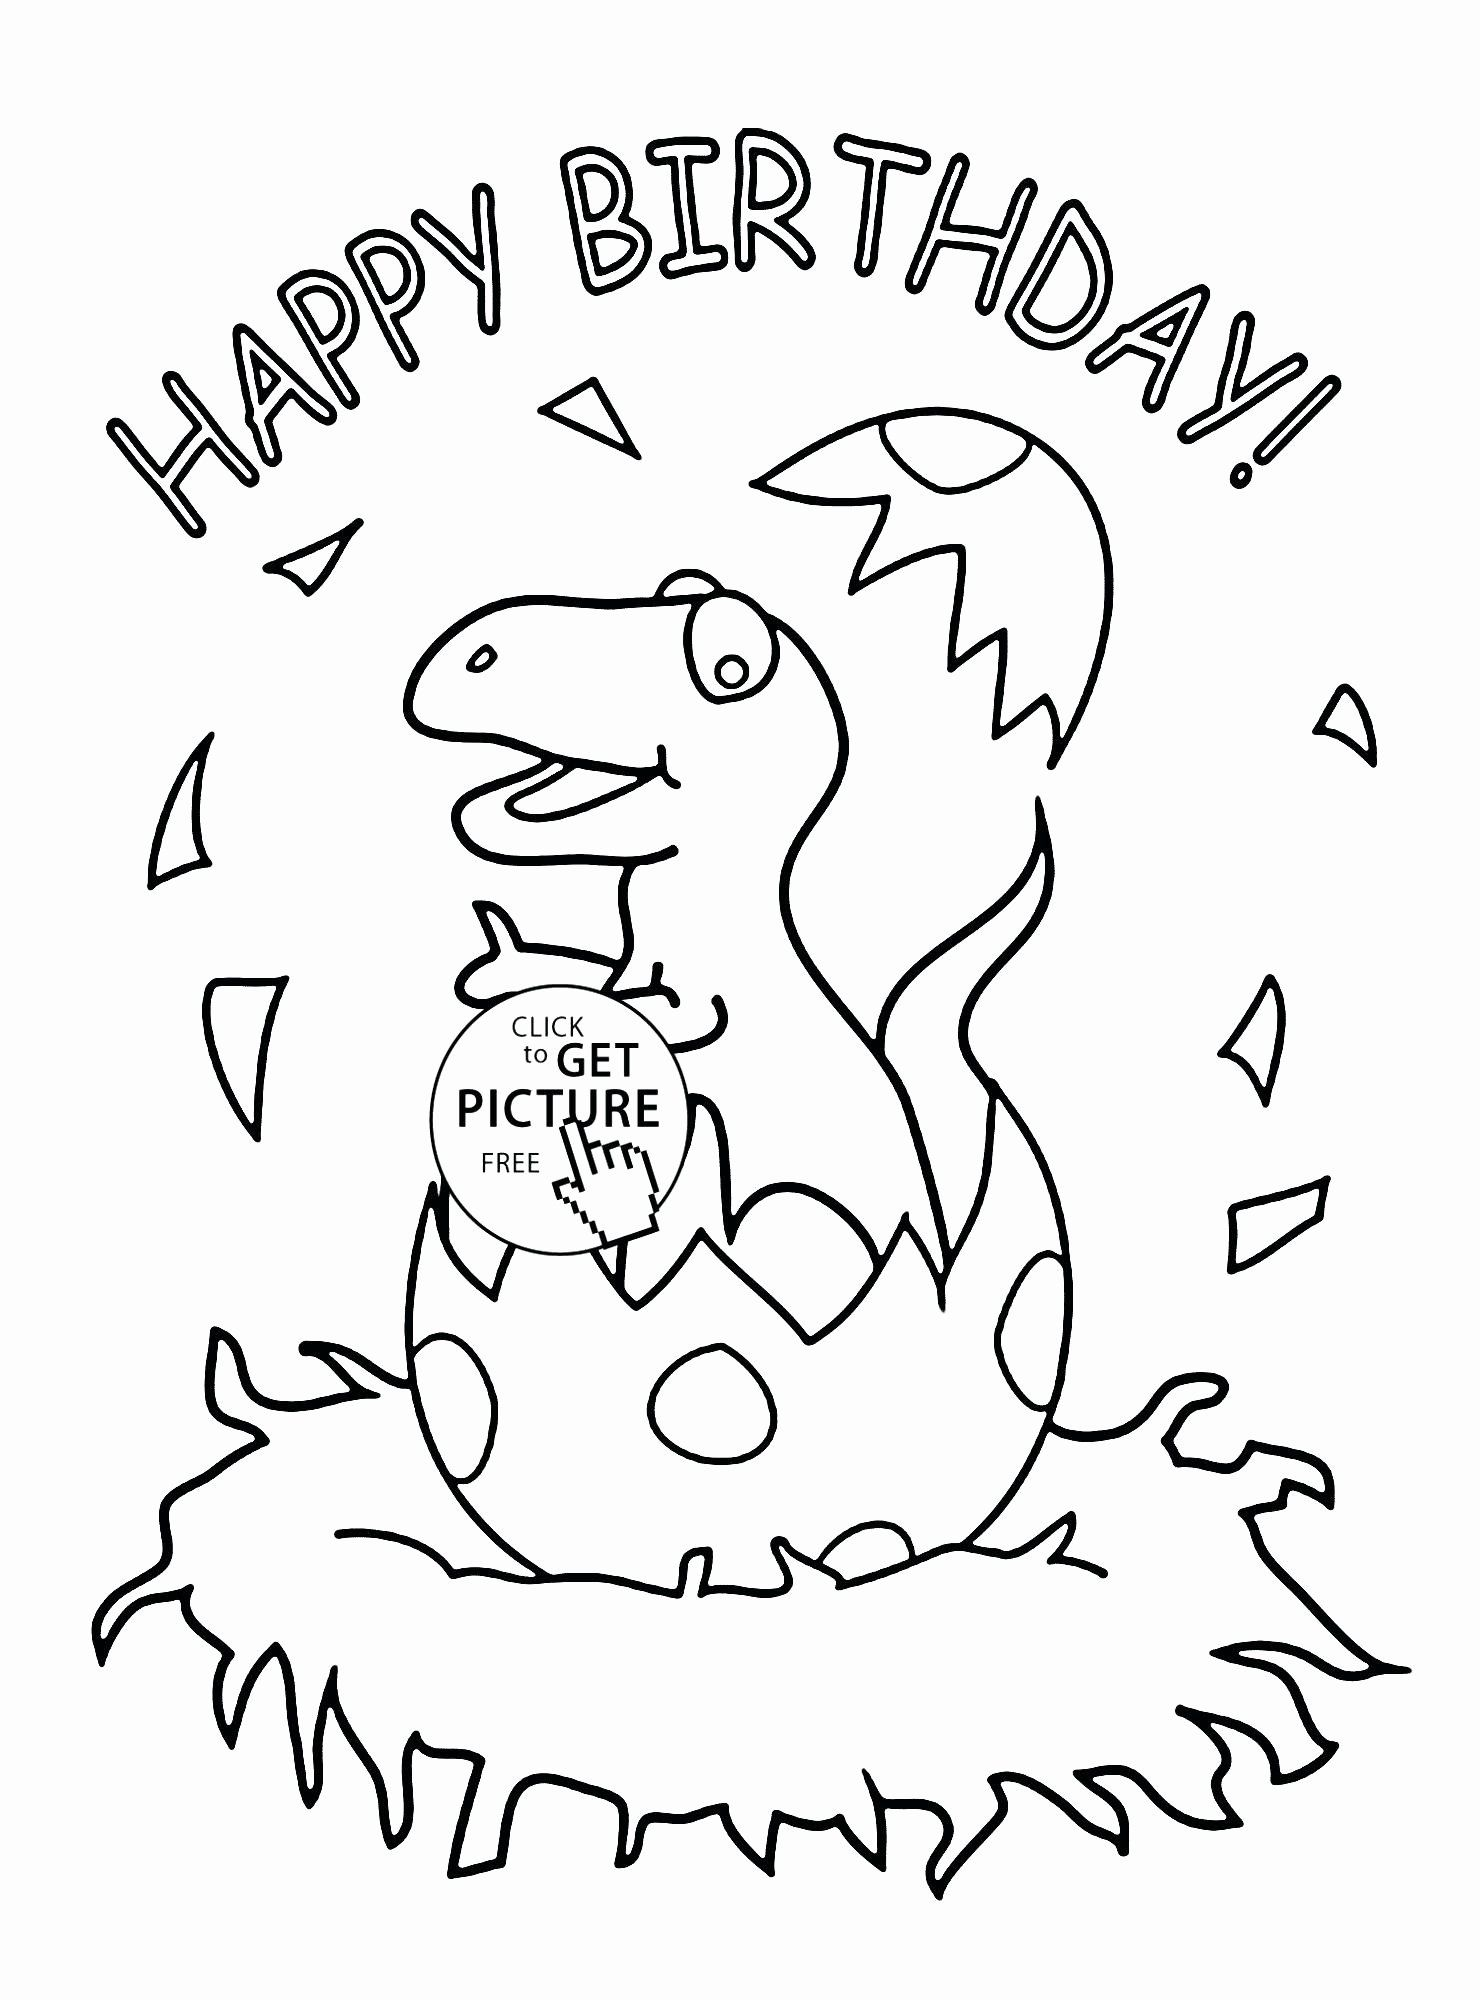 Birthday Card Coloring Page Printable Best Of Birthday Cards Coloring Pages Hig Happy Birthday Coloring Pages Birthday Coloring Pages Coloring Birthday Cards